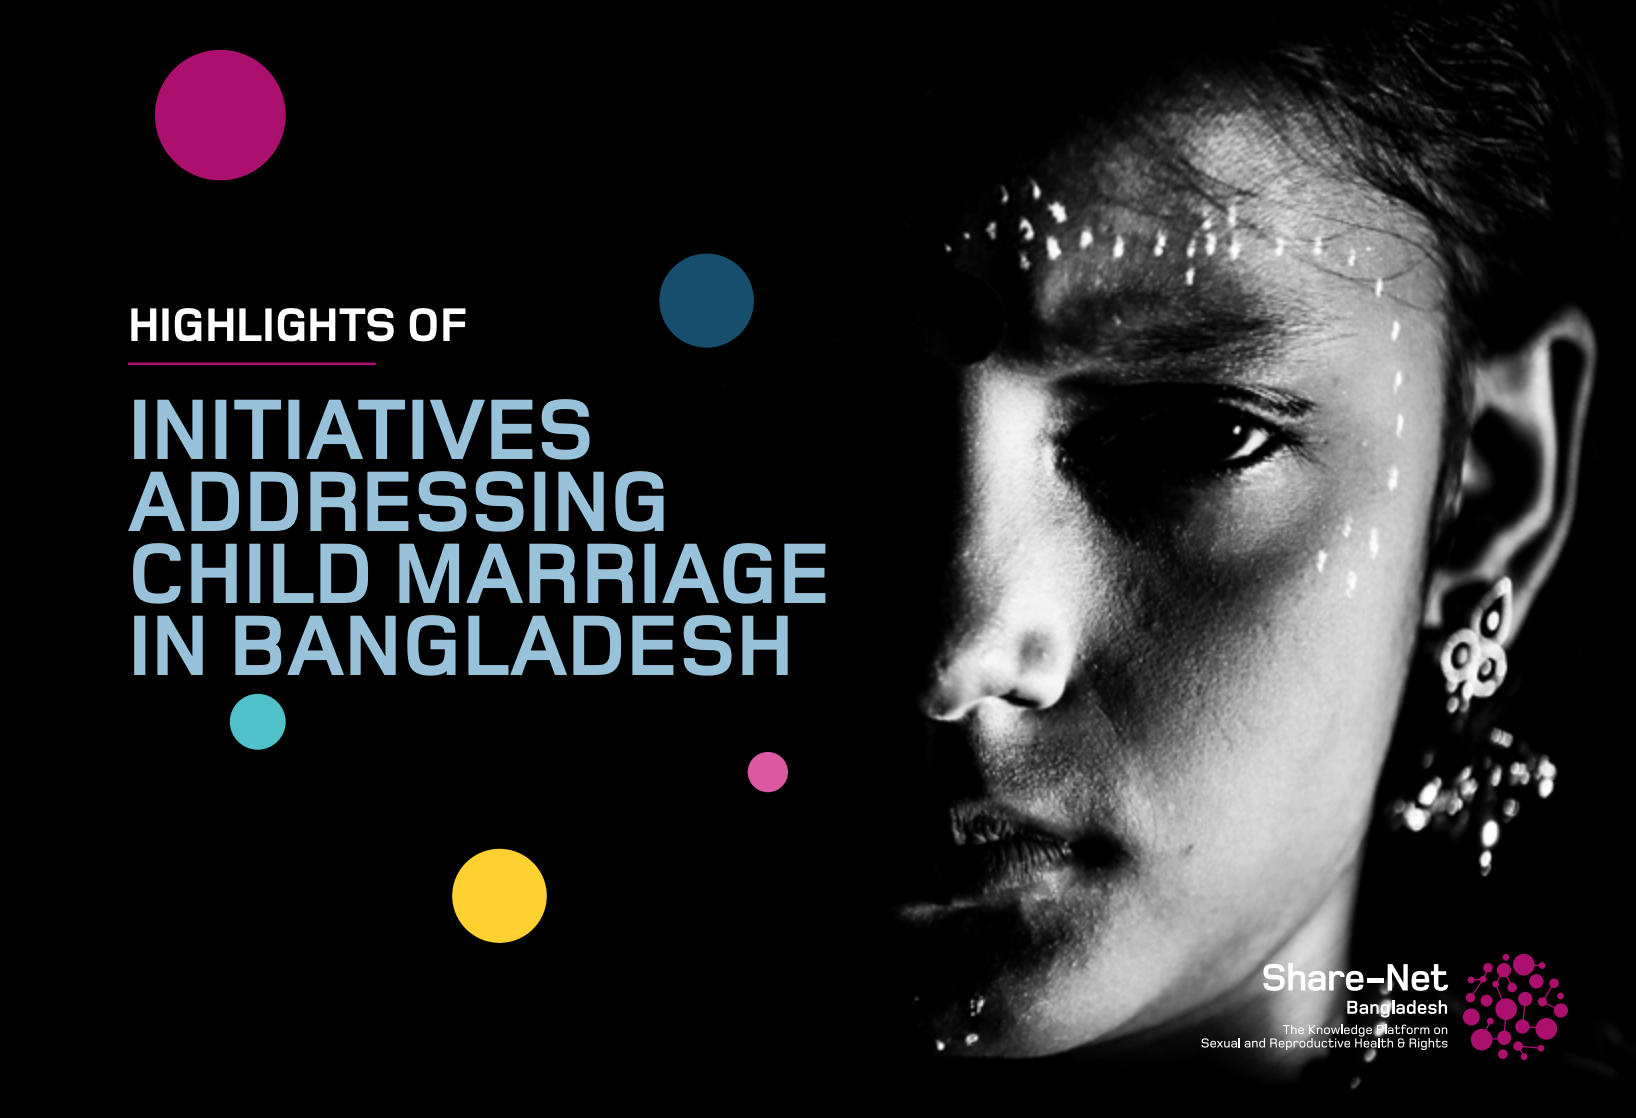 Initiatives Addressing Child Marriage in Bangladesh